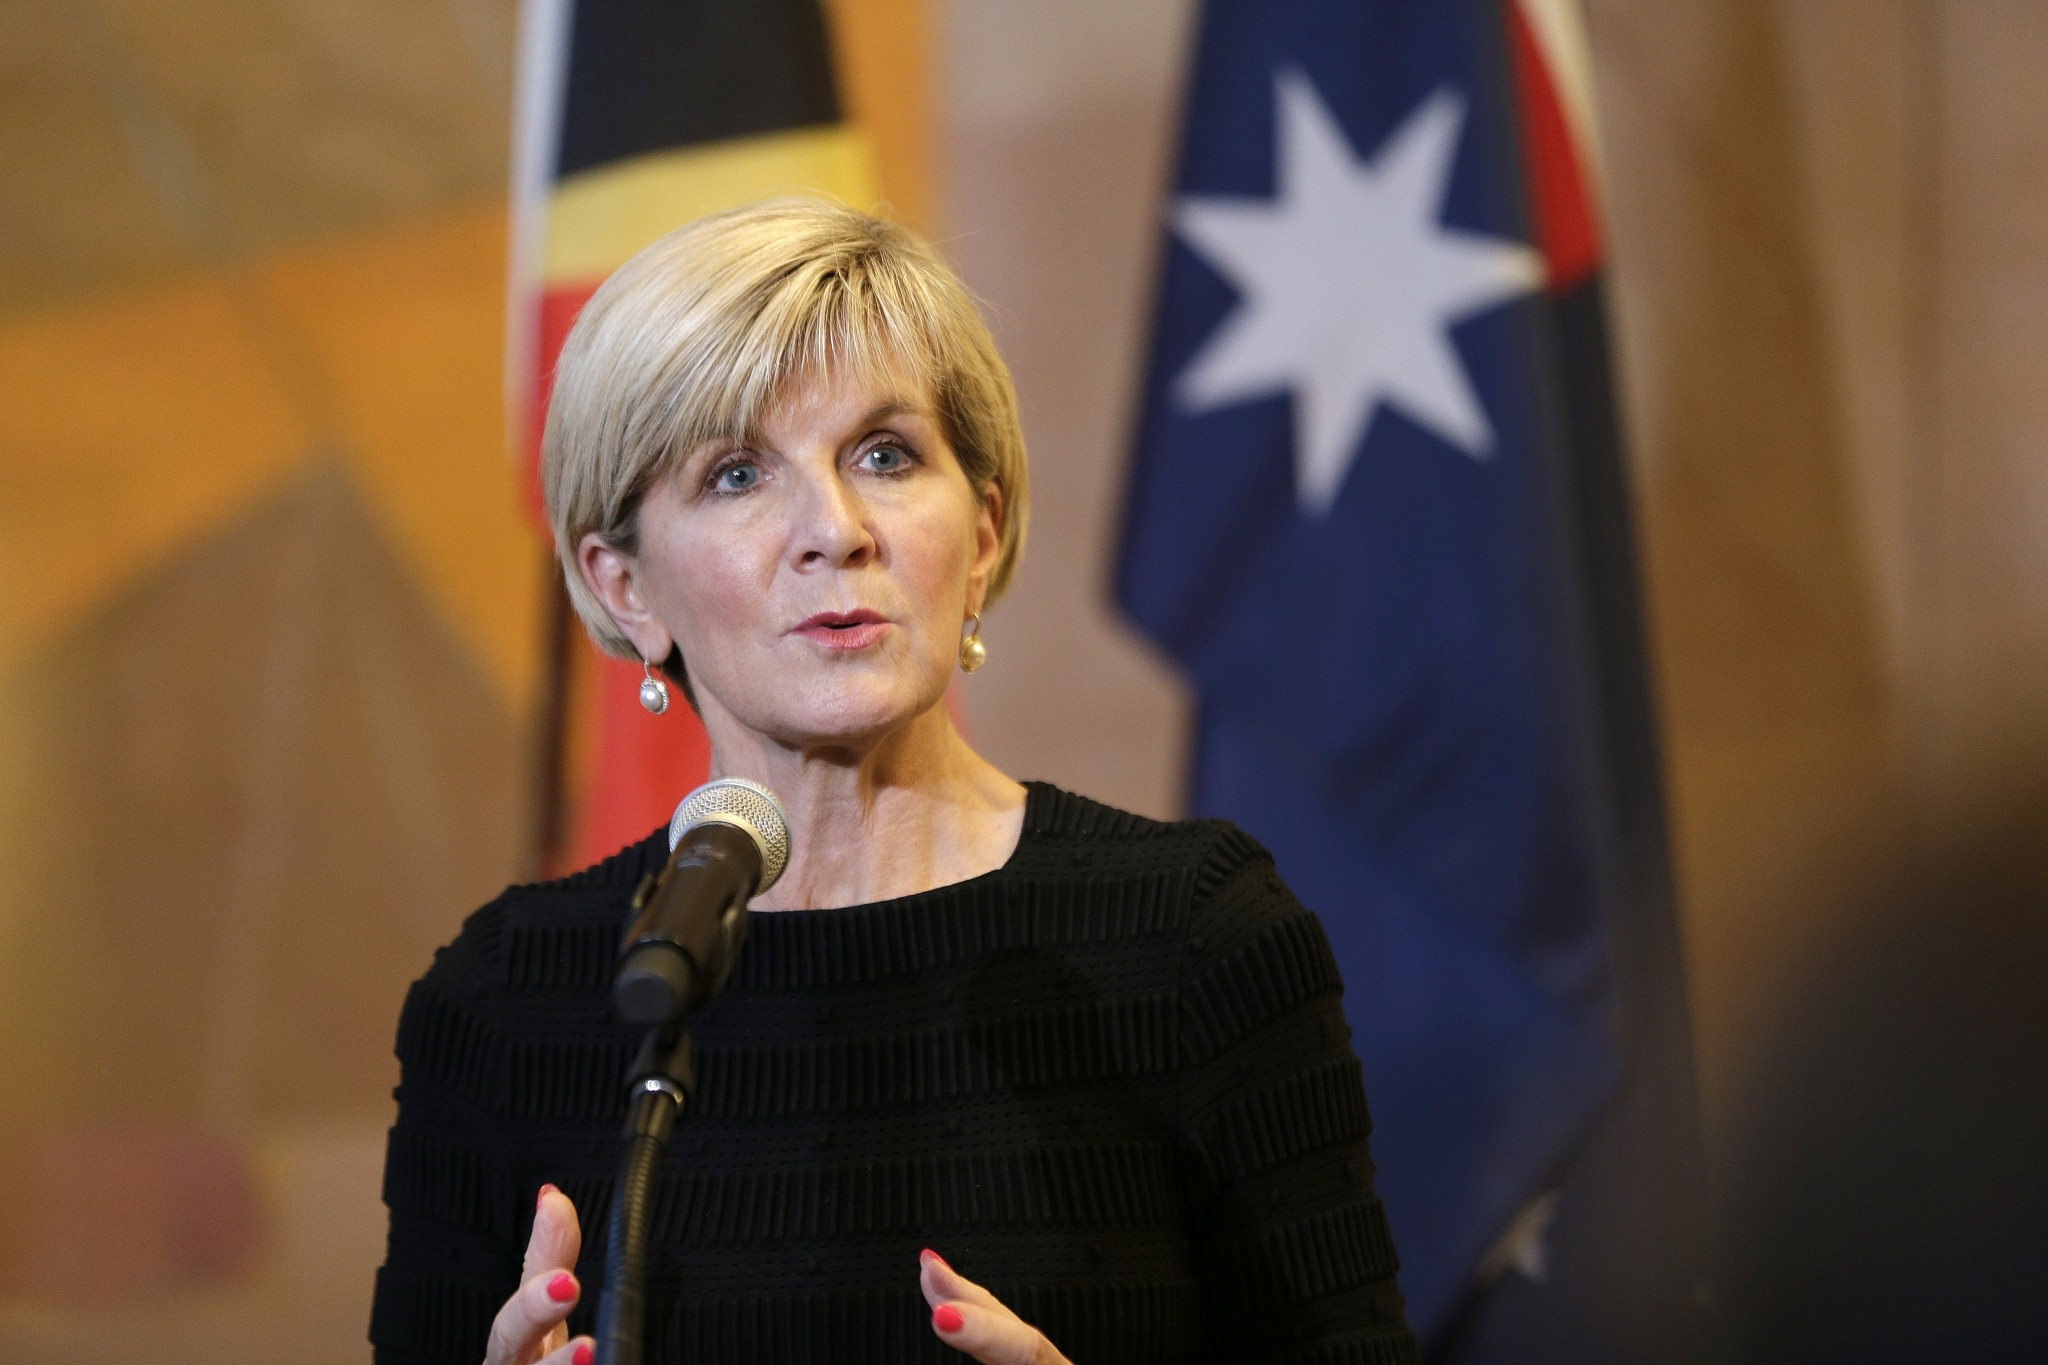 Australia stops direct aid to Palestine